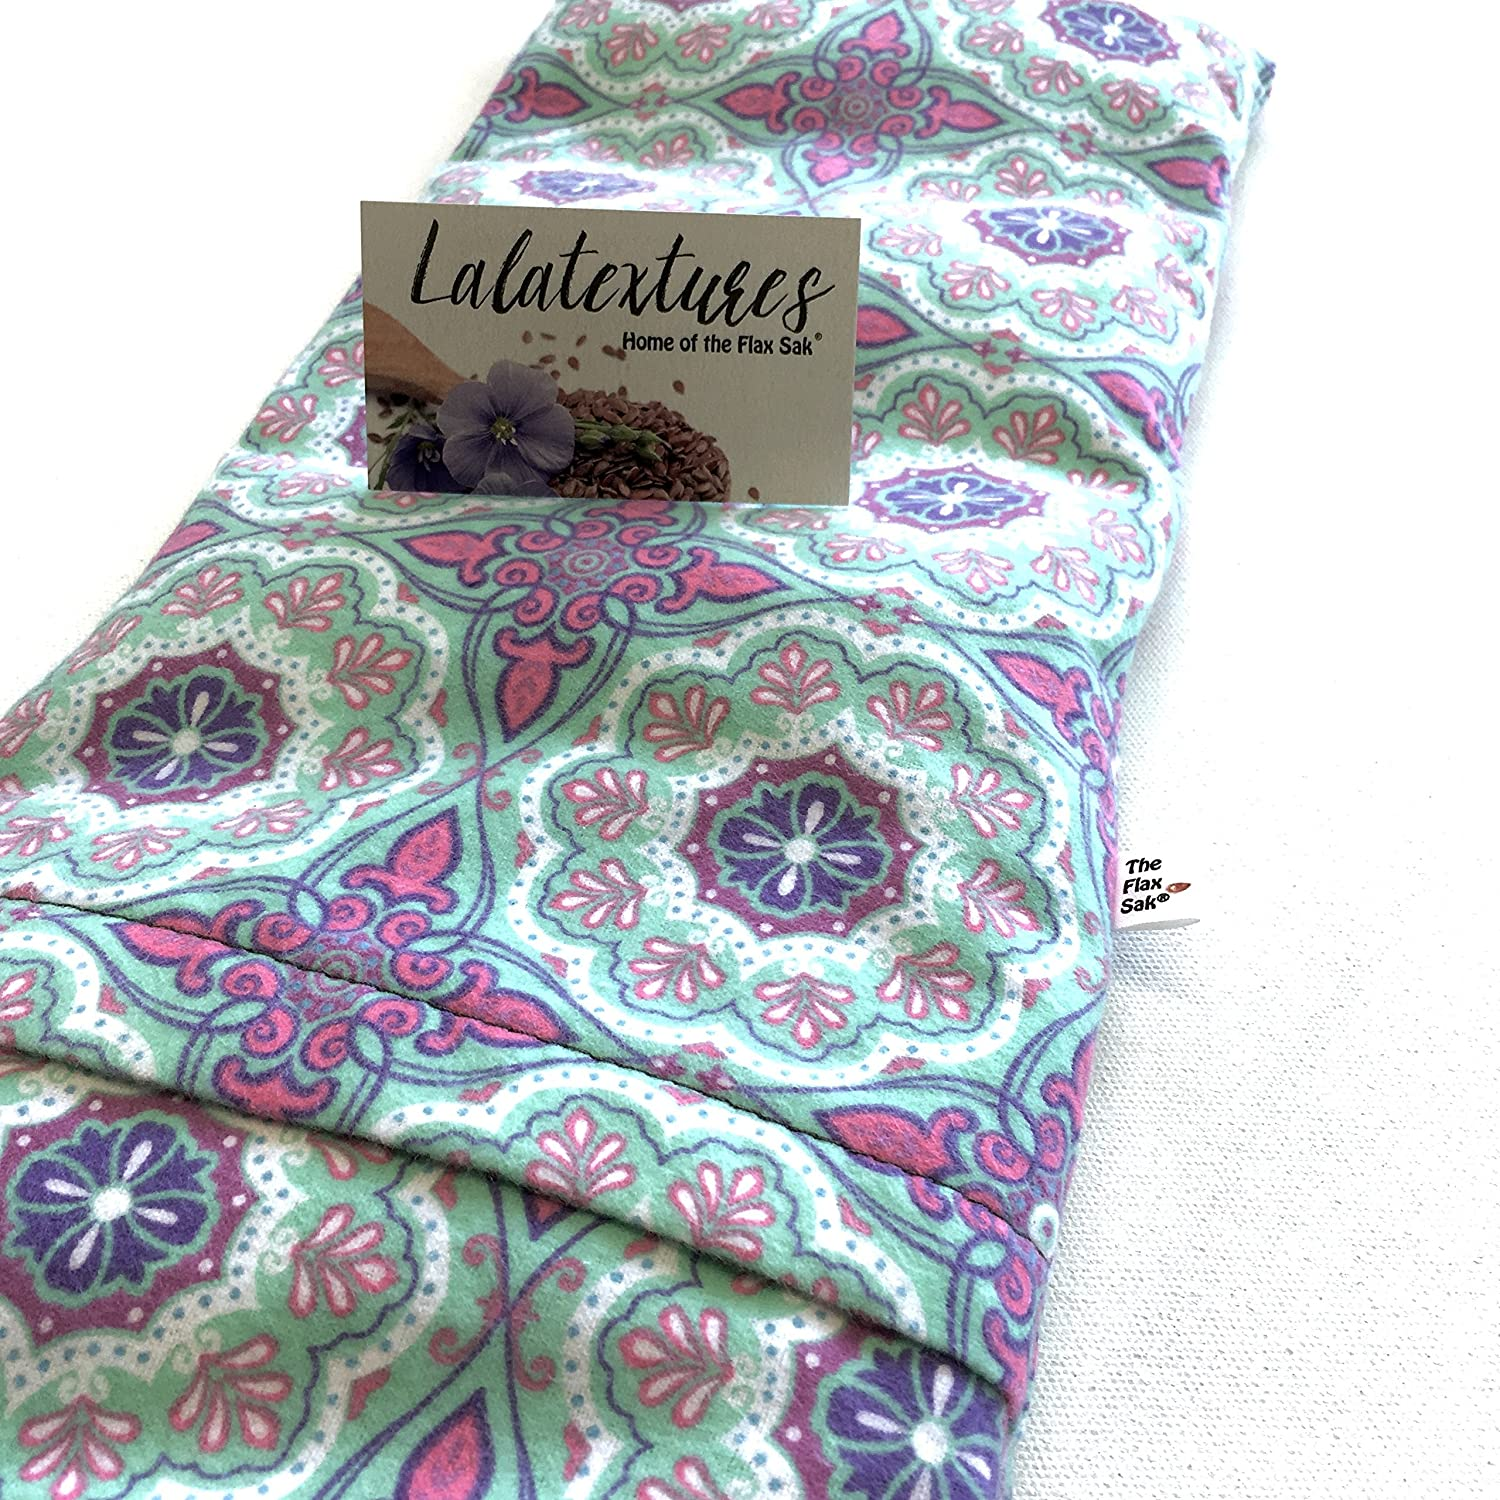 or XX Large microwavable heating pad X large Large TheFlax Sak Hot//cold pack with removable//washable cover.